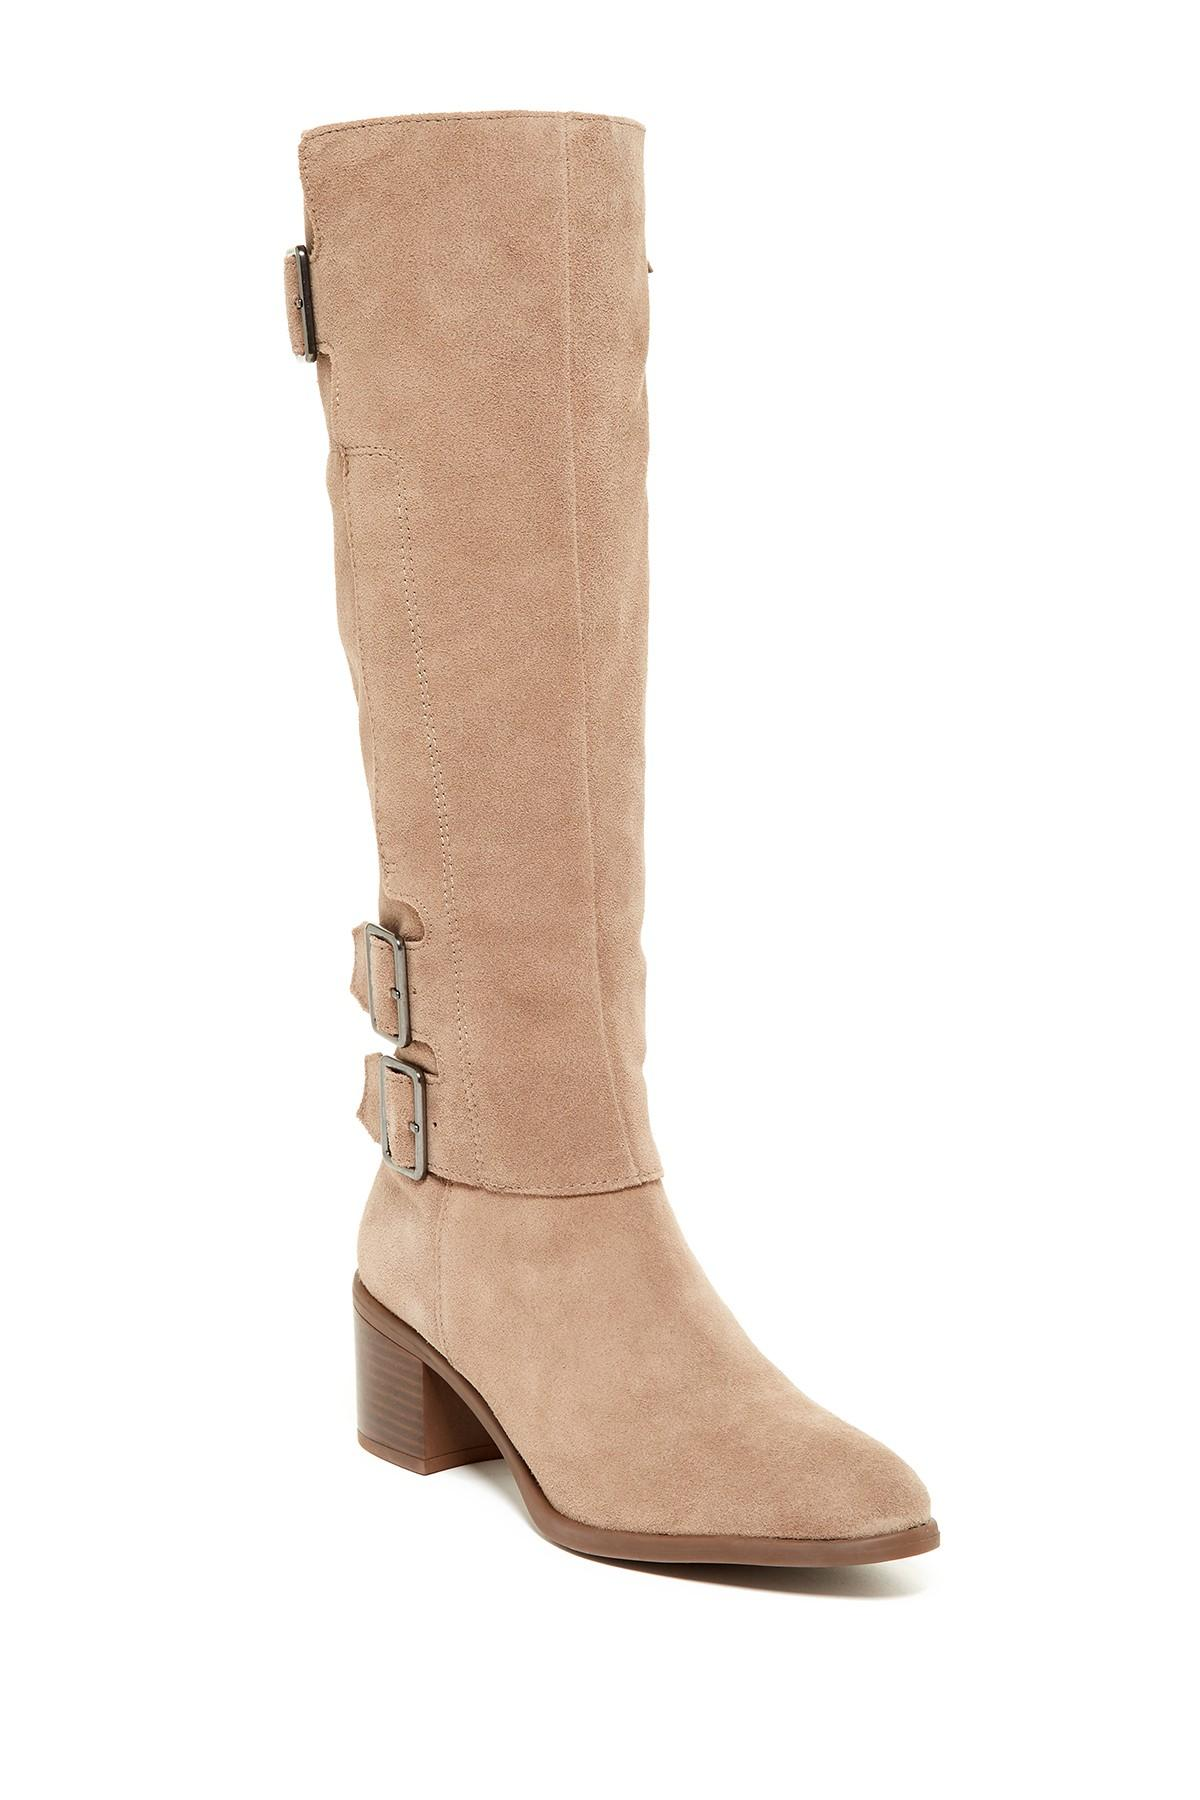 4be0afbecc8 Lyst - Franco Sarto Elate Tall Boot in Natural